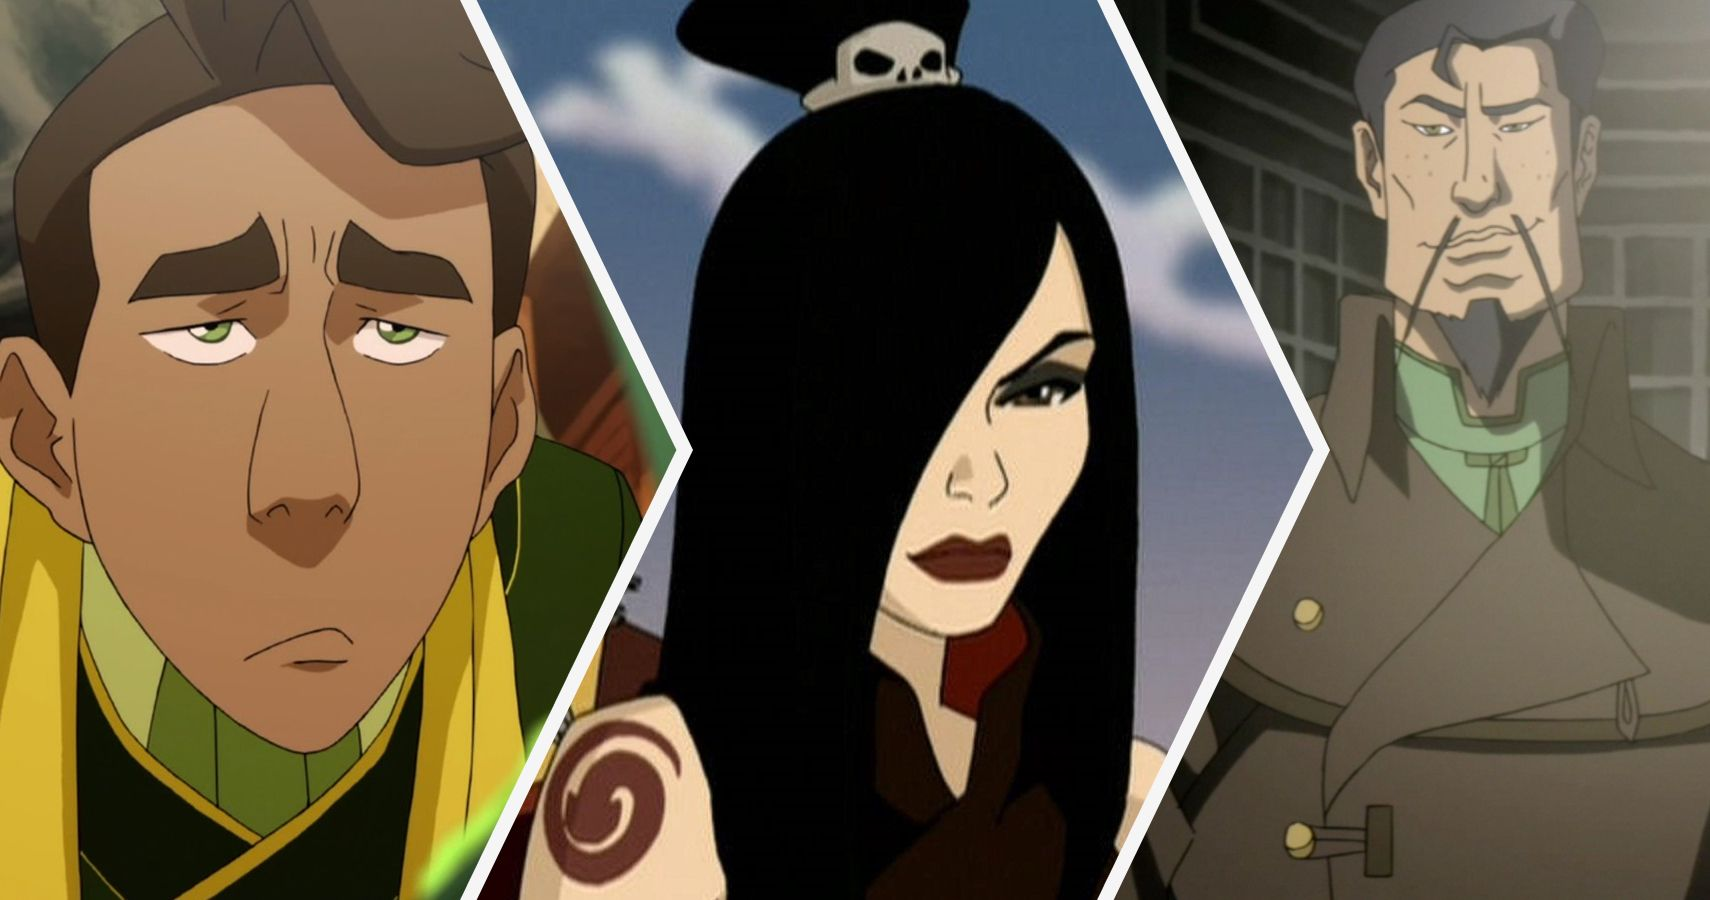 15 Characters From Avatar (And 10 From Legend of Korra) That Fans Are Trying To Forget